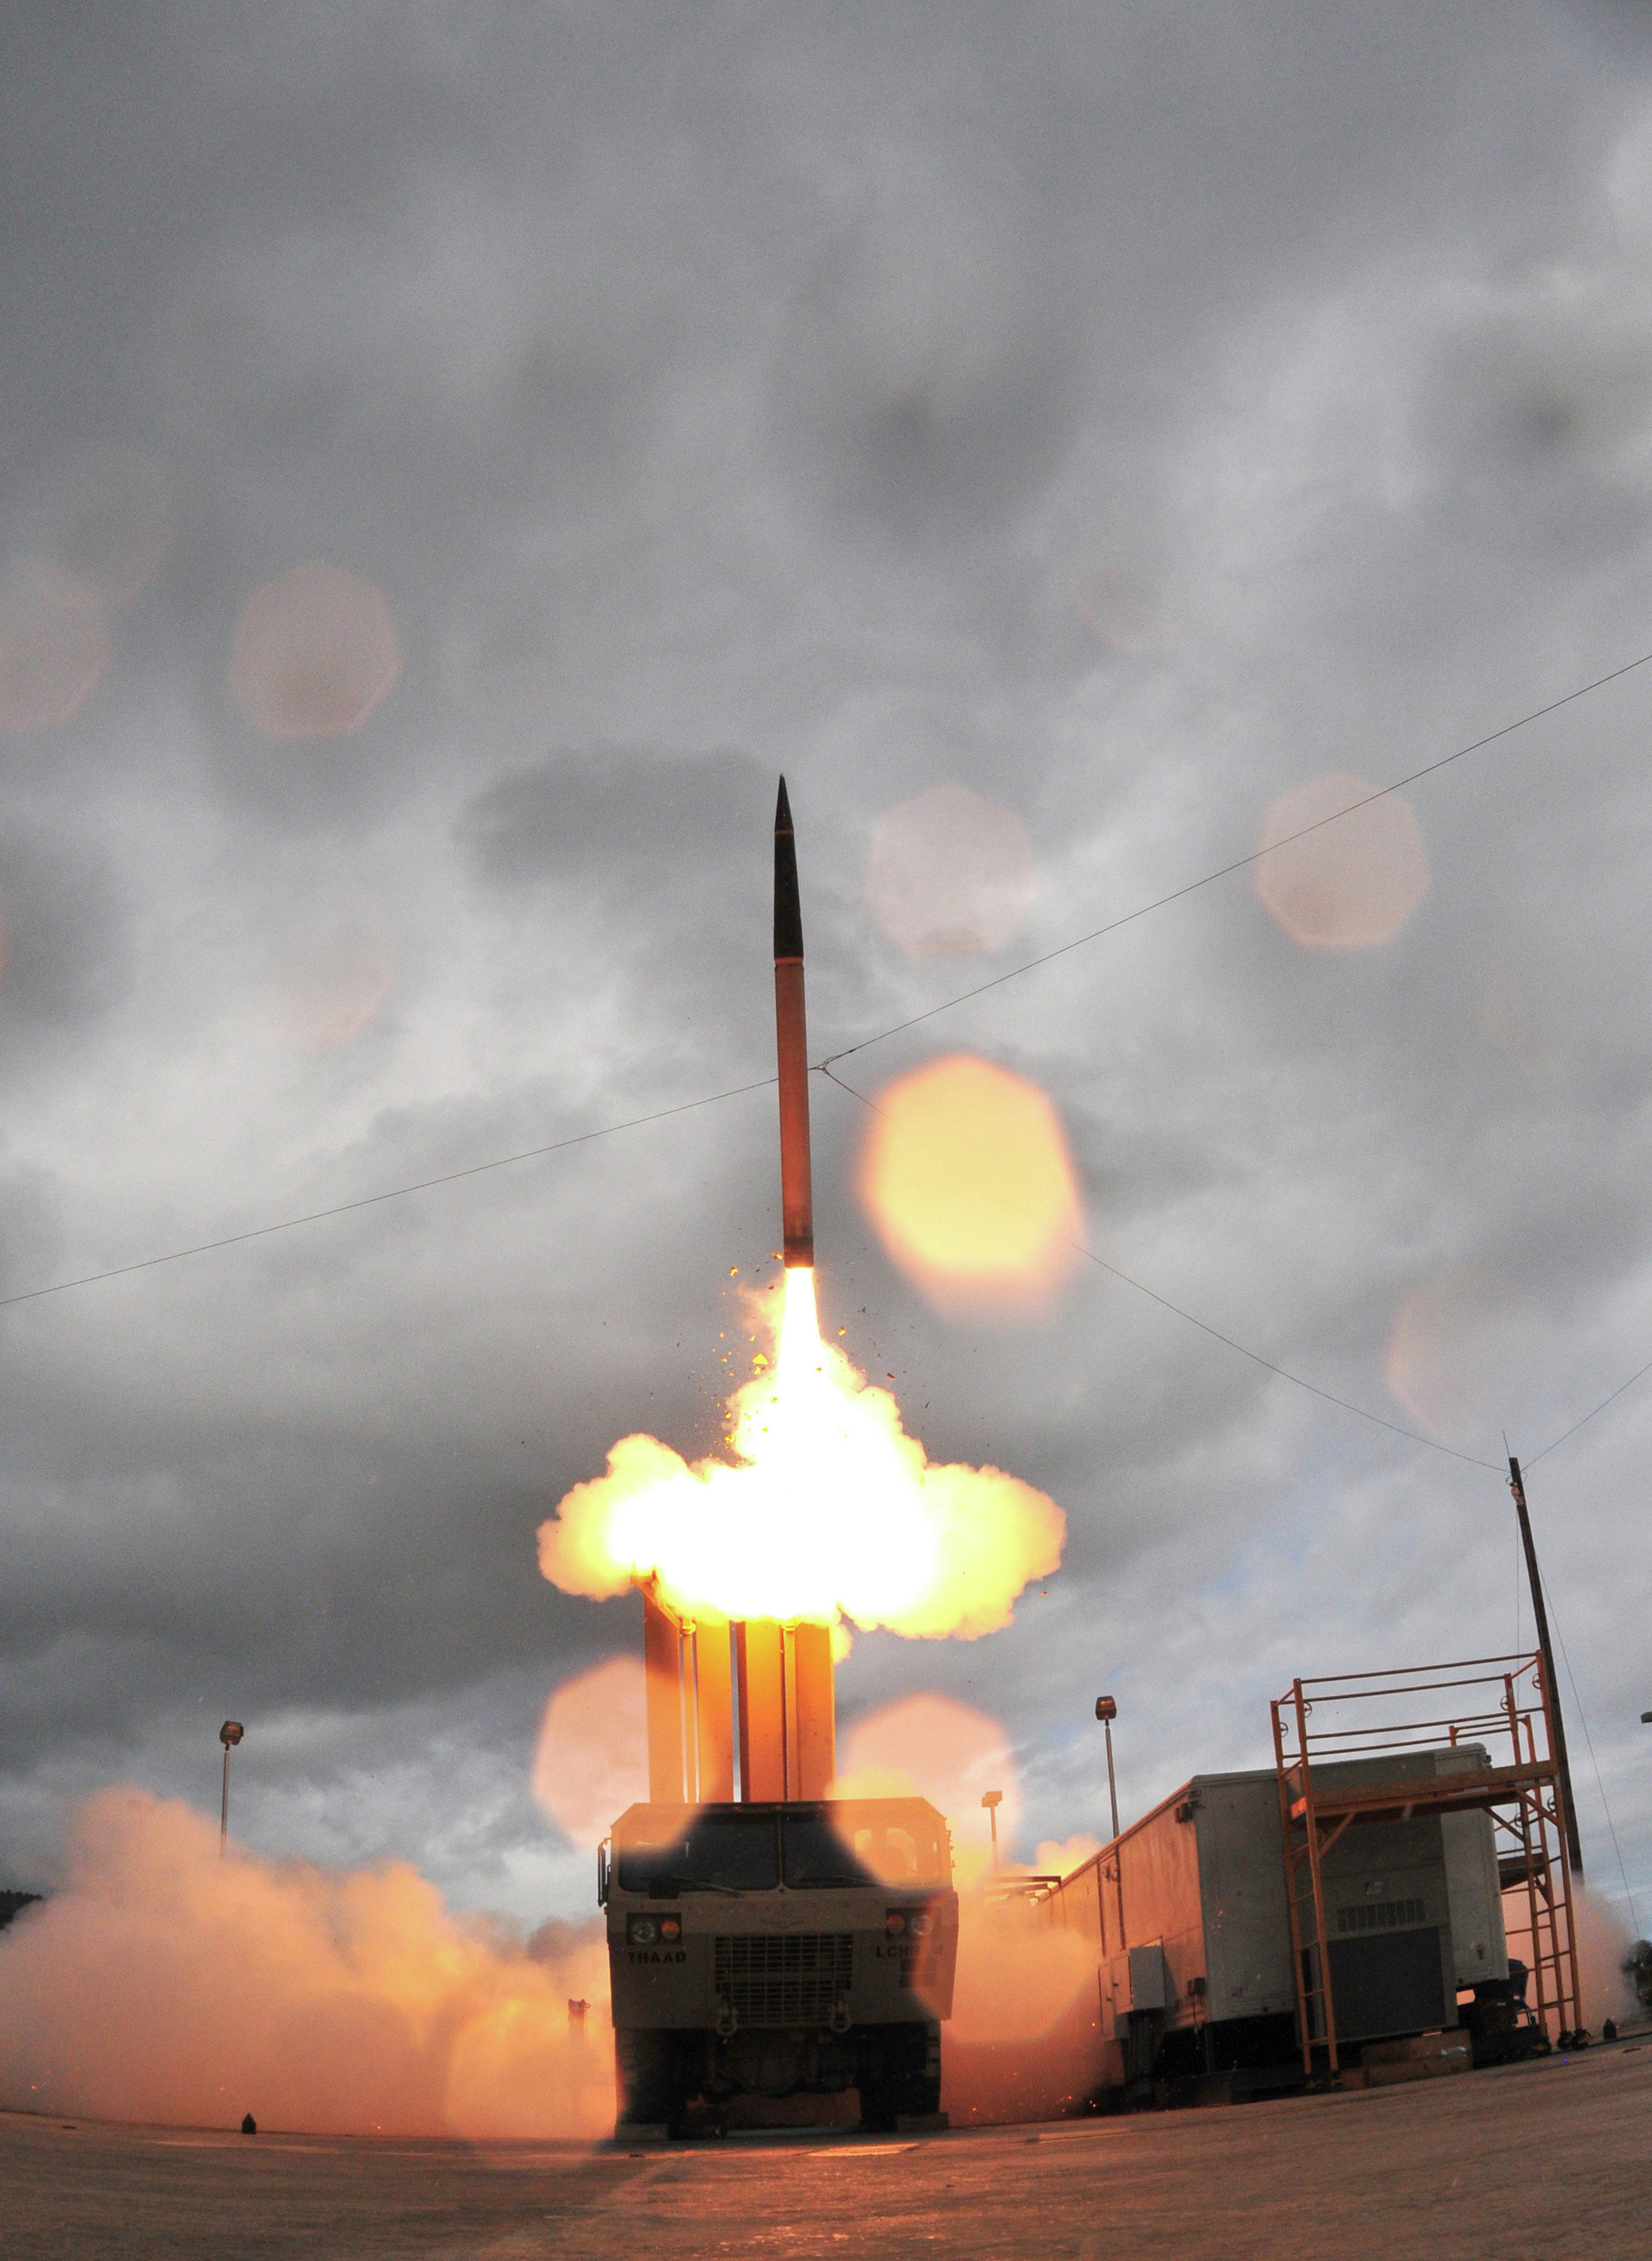 Lockheed Martin shows the Terminal High Altitude Area Defense system, or THAAD missile being launched from a mobile launcher at Kauai's Pacific Missile Range Facility